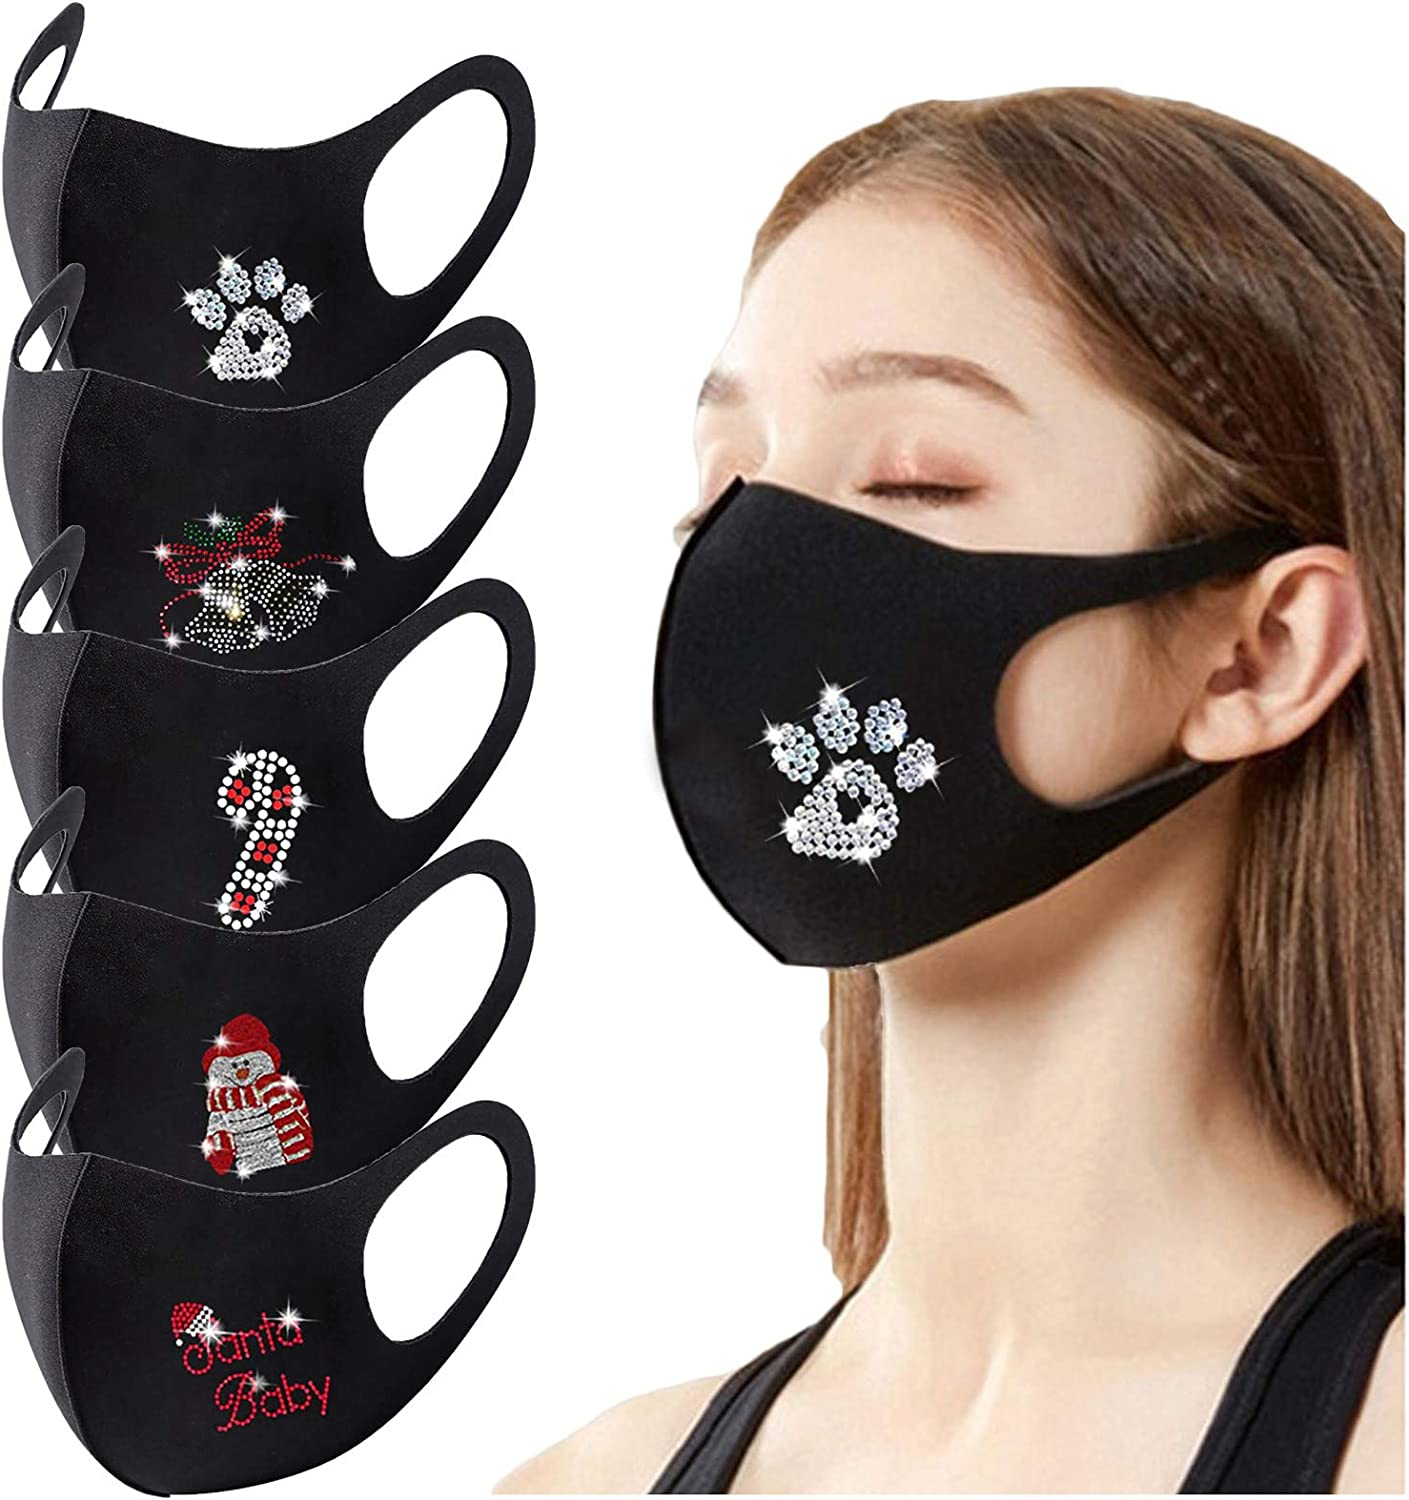 Gerichy Christmas Facemask for Adults, Adult Face Balaclava Reusable Breathable Bling Rhinestone Fashion Cloth Face_Mask